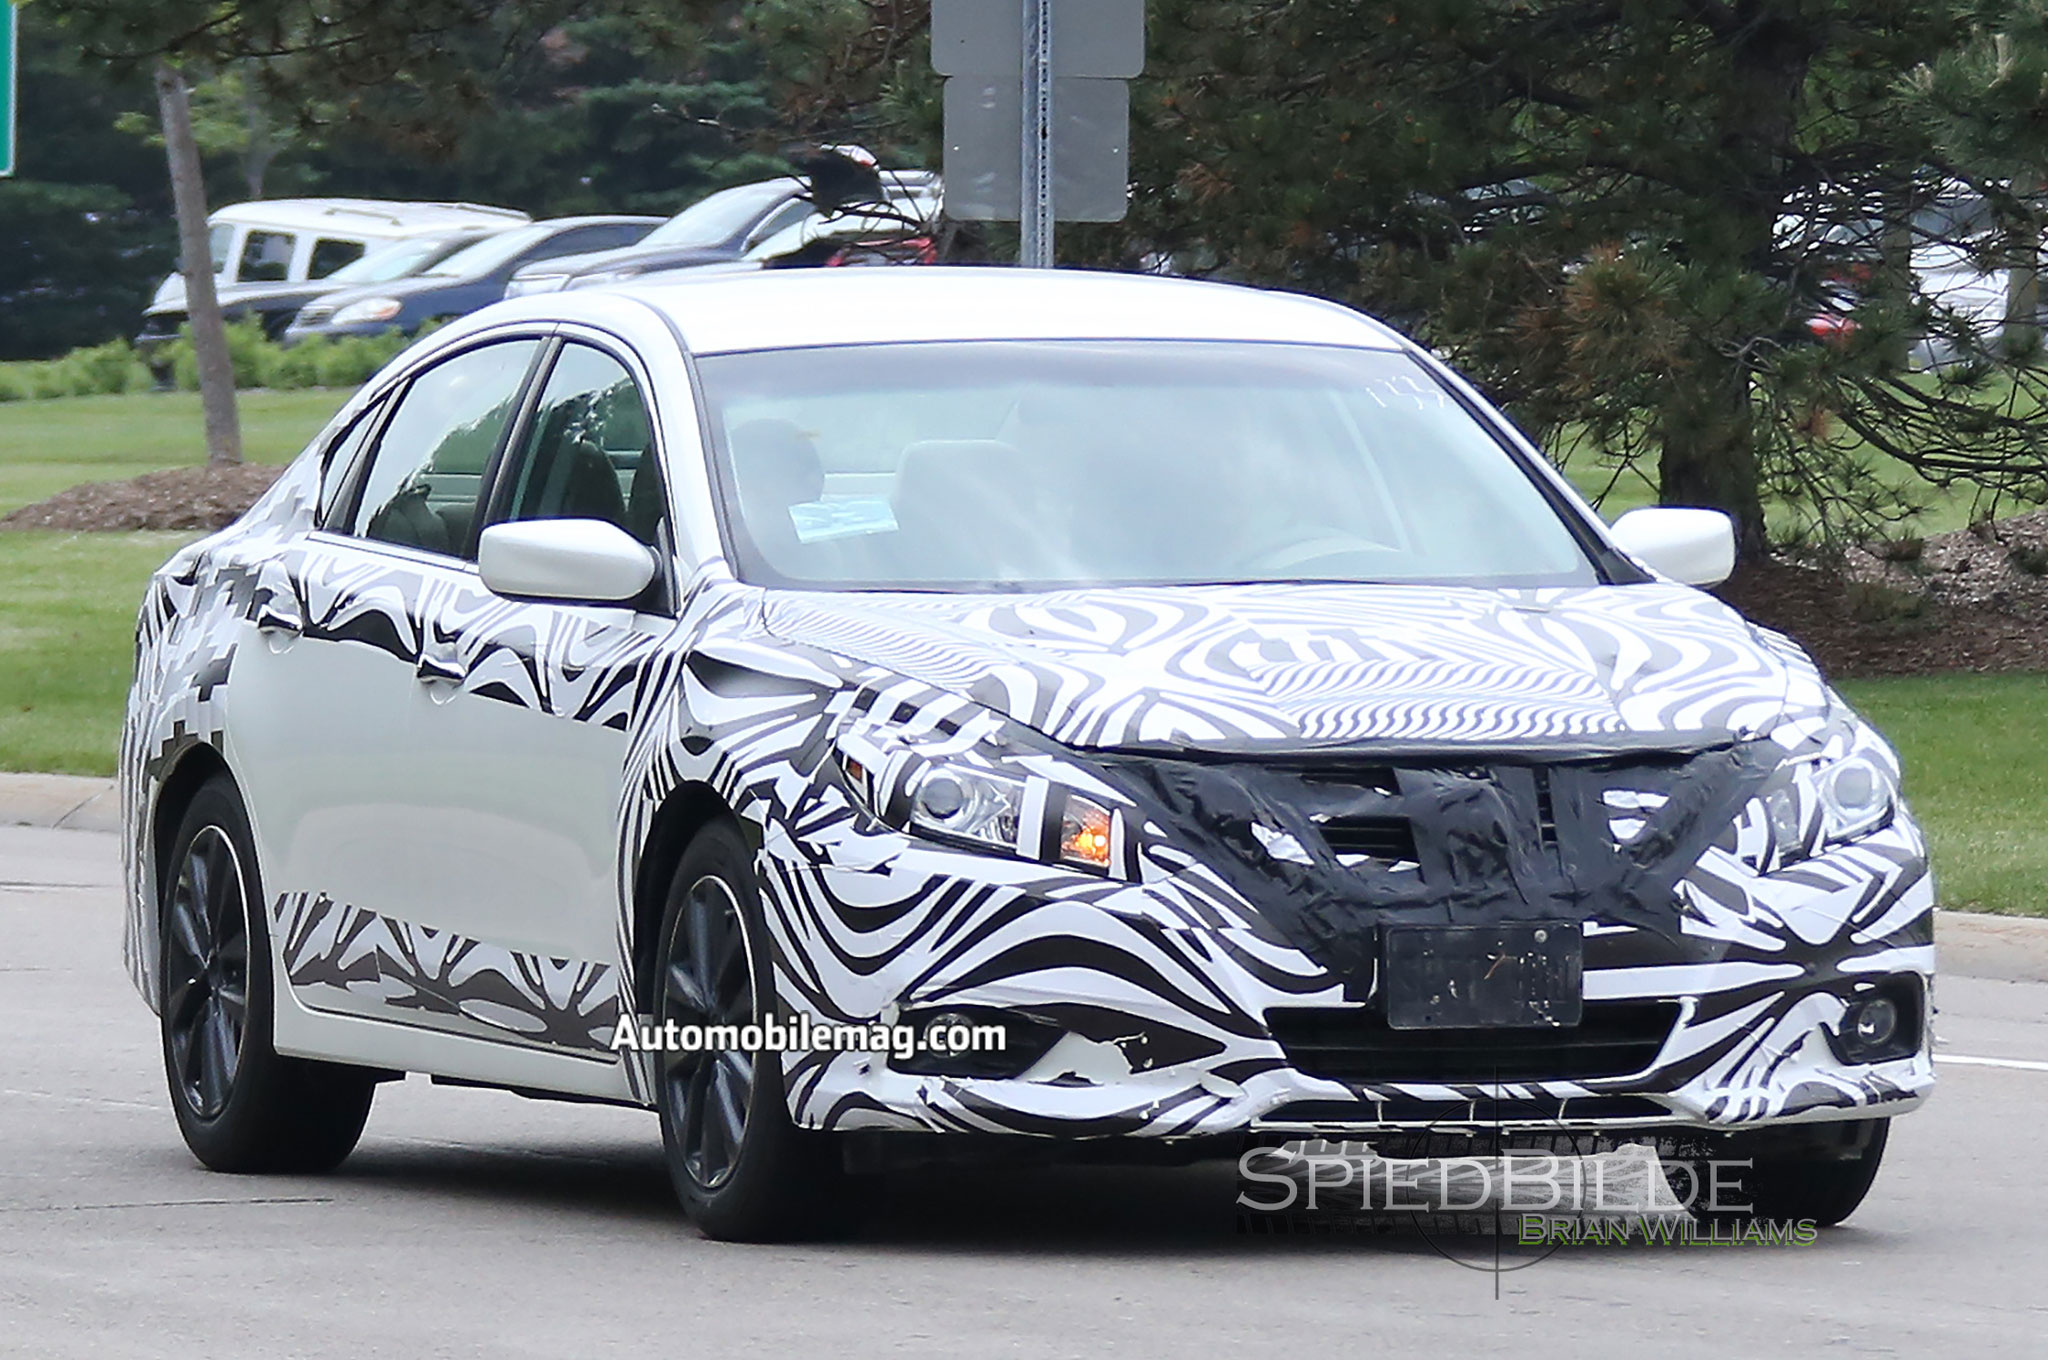 2016 Nissan Altima Spied with V-Motion Grille